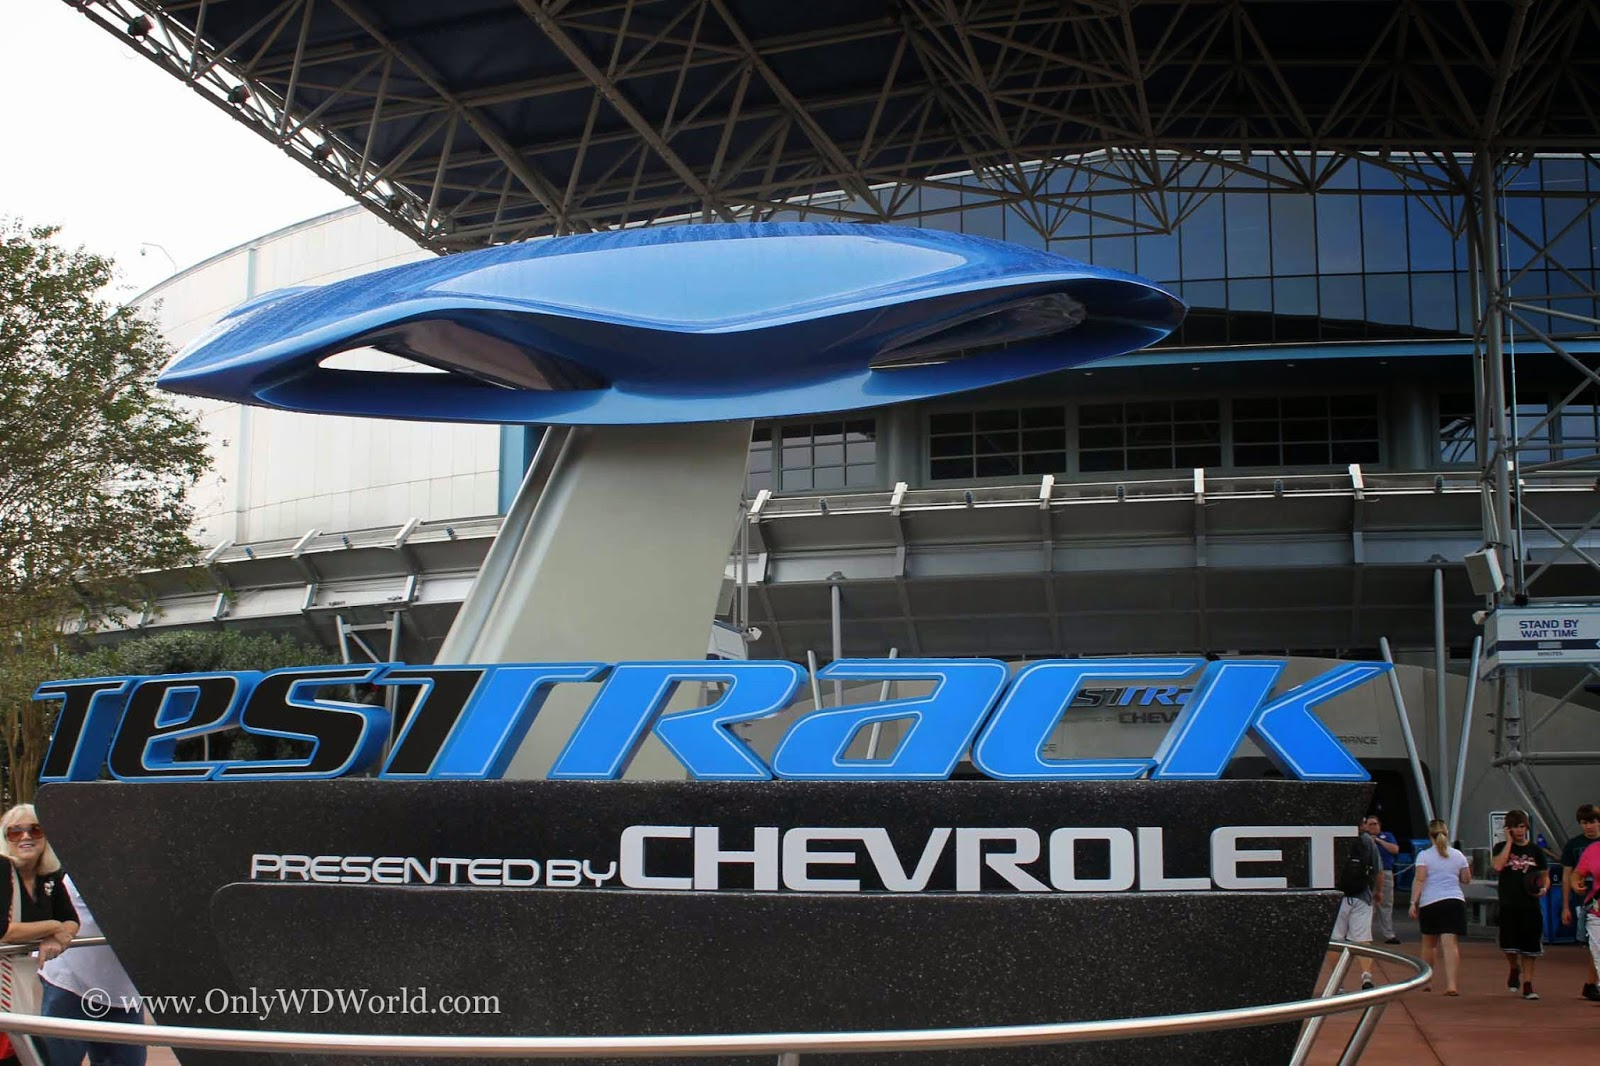 Test Track Brings Back Some Of The Original Epcot Focus